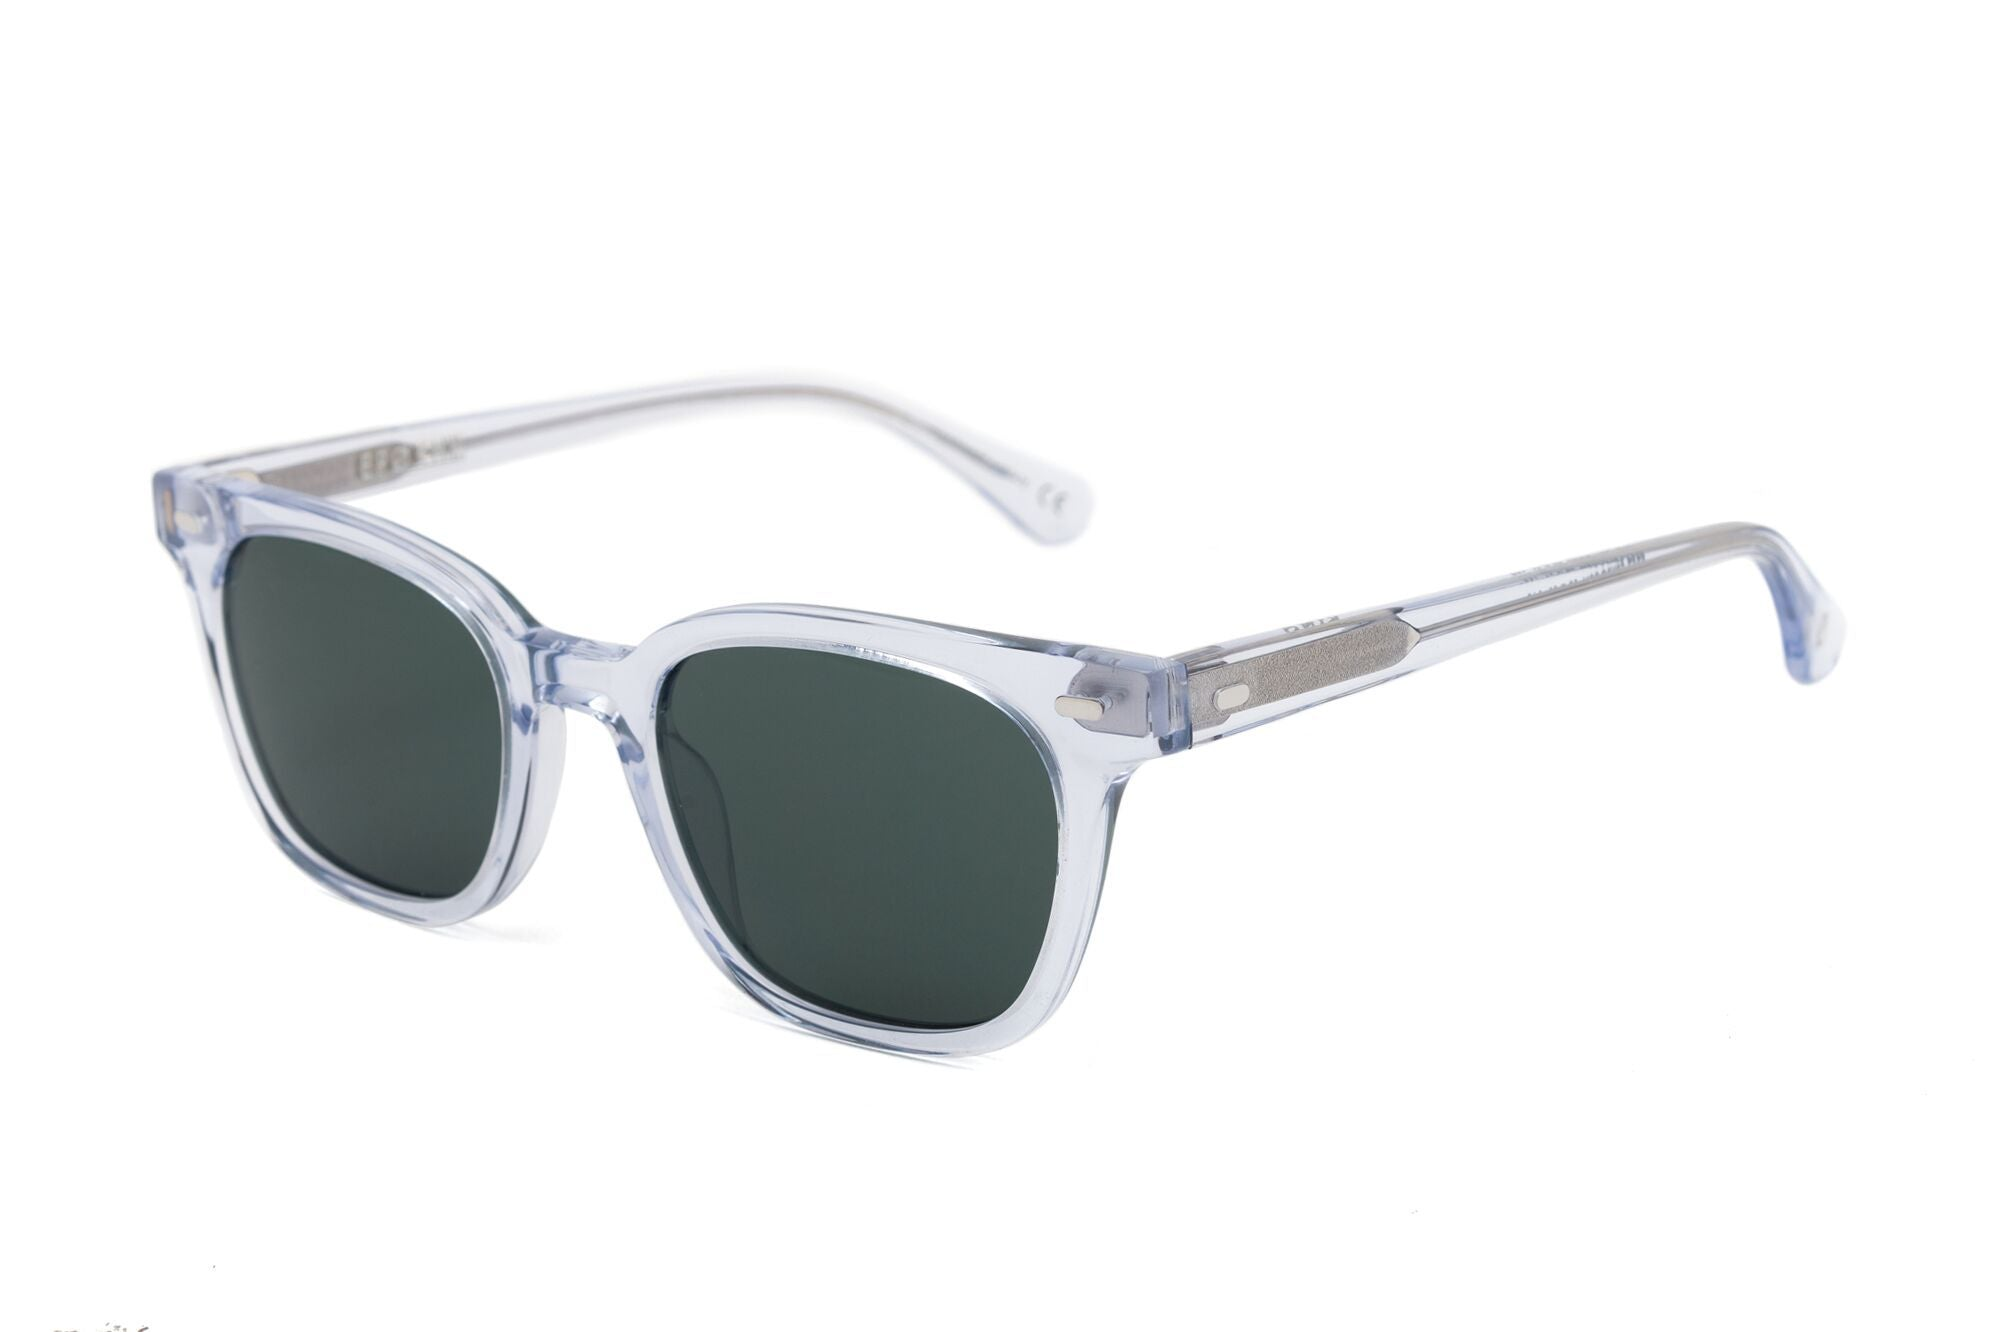 Epokhe KINO - CRYSTAL POLISHED/GREEN - Board Store EpokheSunglasses